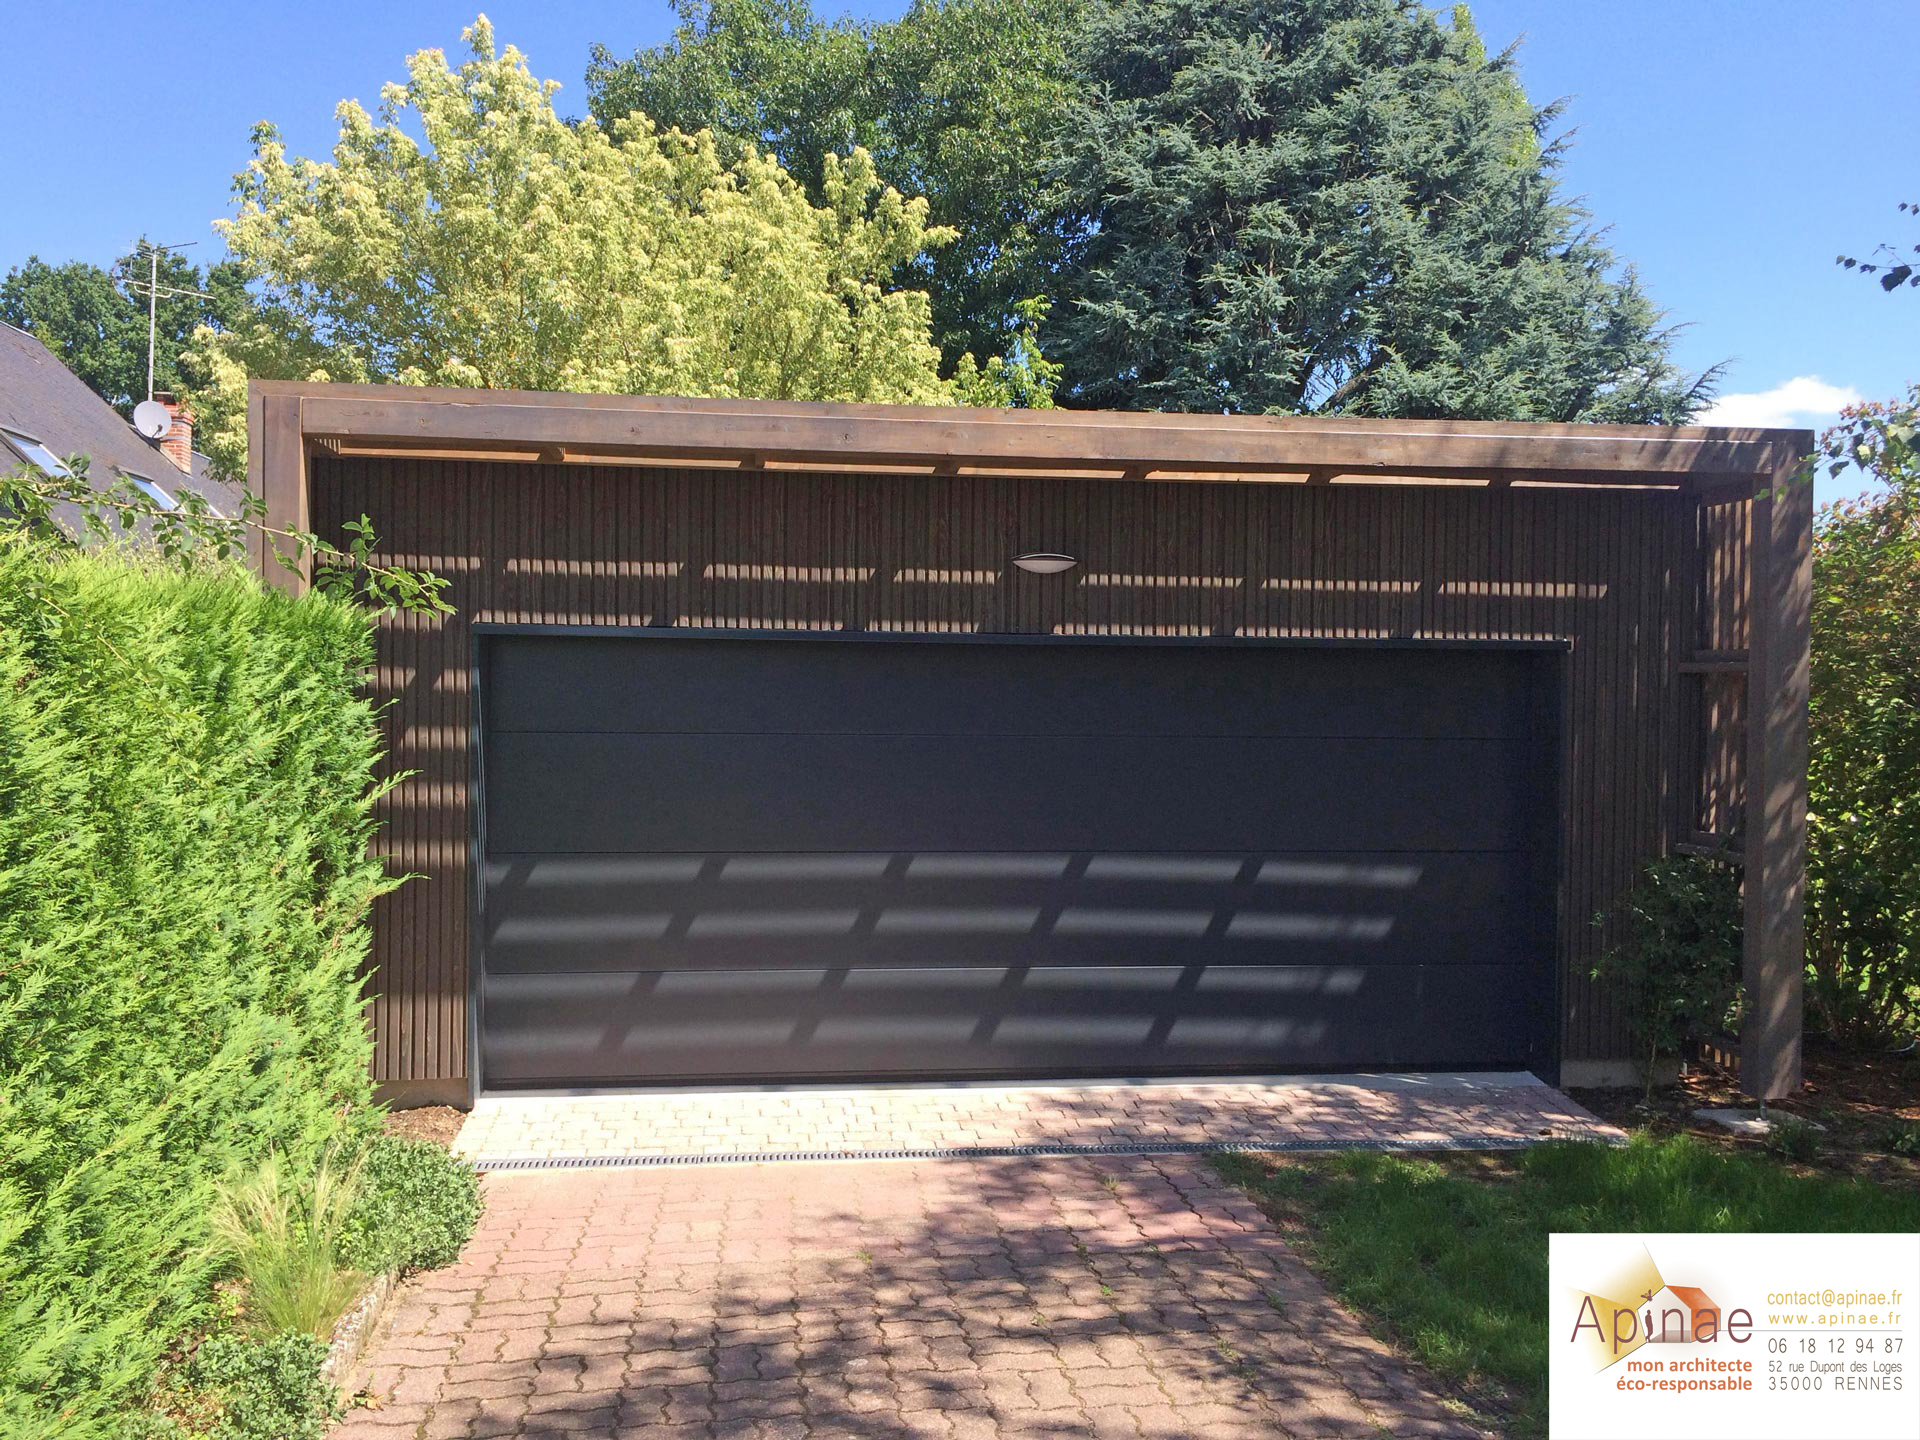 Extension garage toit plat en ossature bois olivet 45210 for Recours architecte extension garage